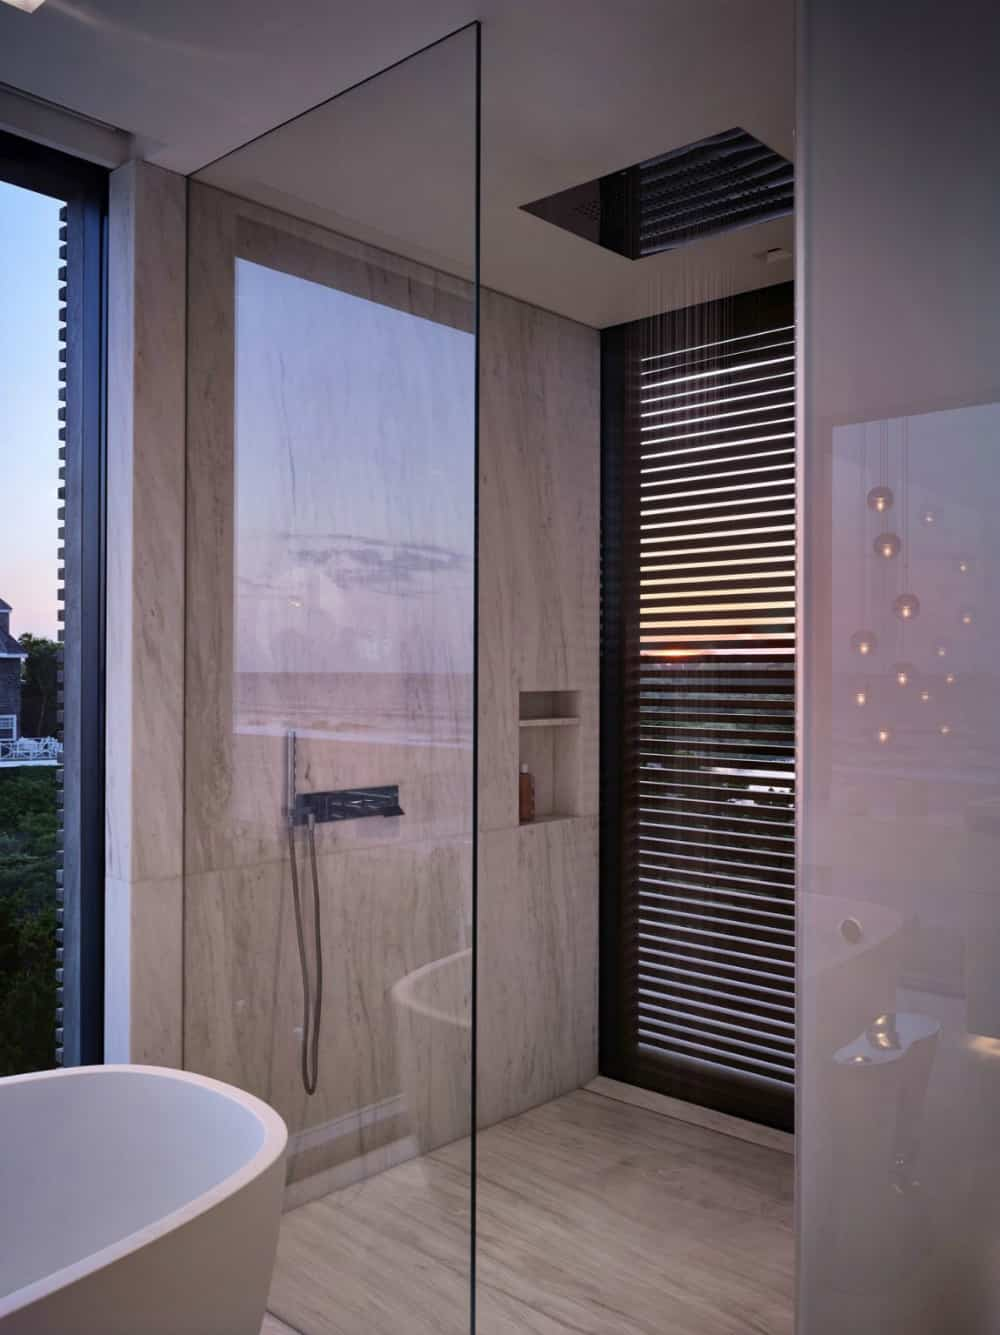 Glass corner shower stall features a screened window